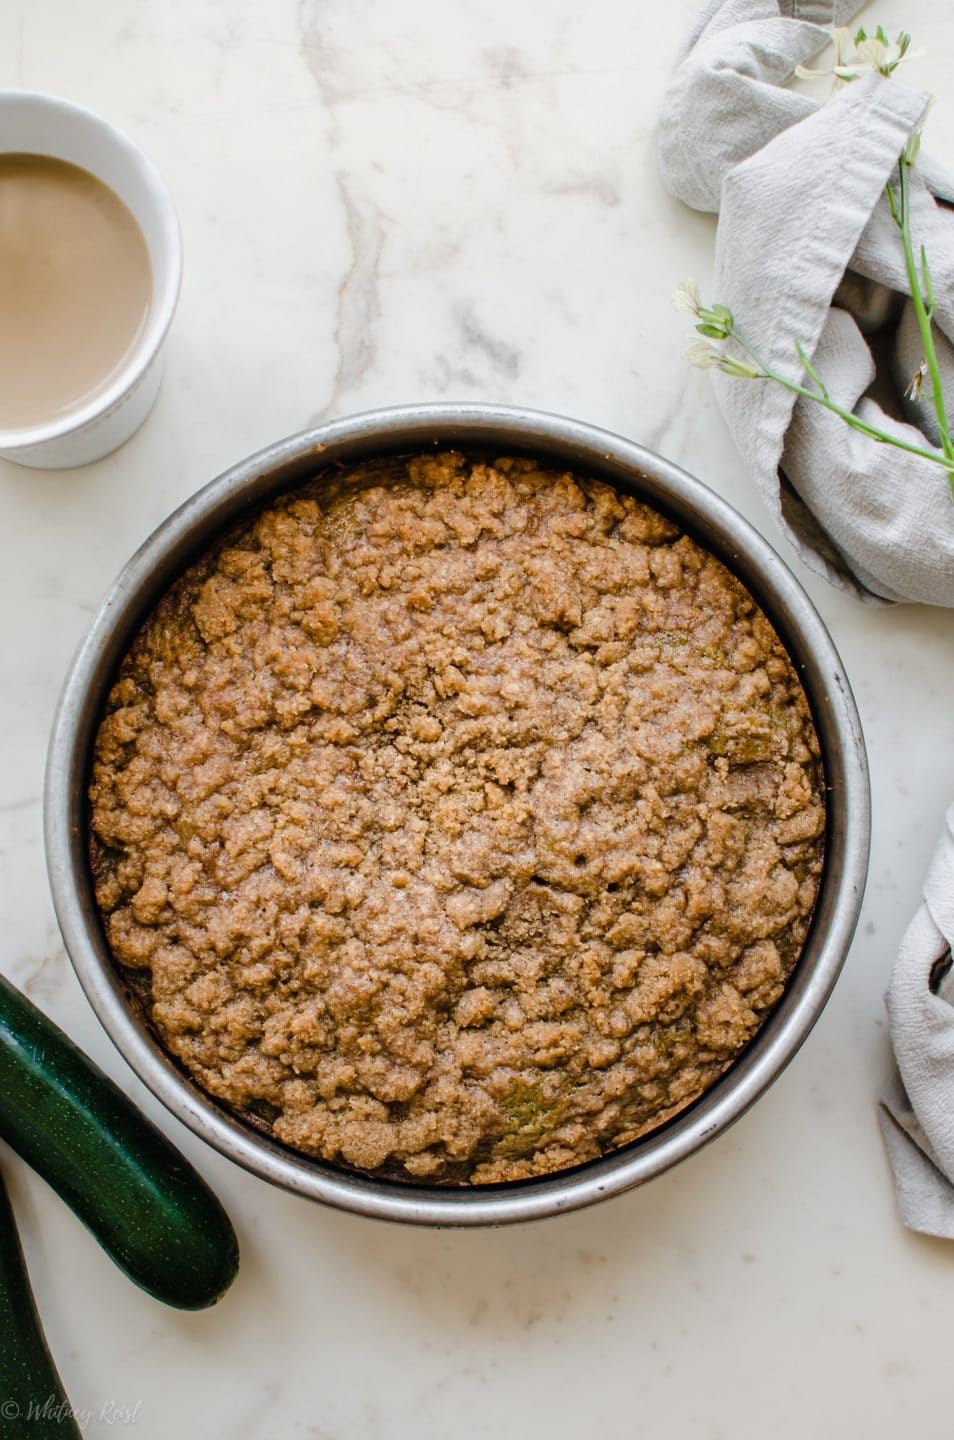 A zucchini coffee cake in a cake pan with a cup of coffee on the side.